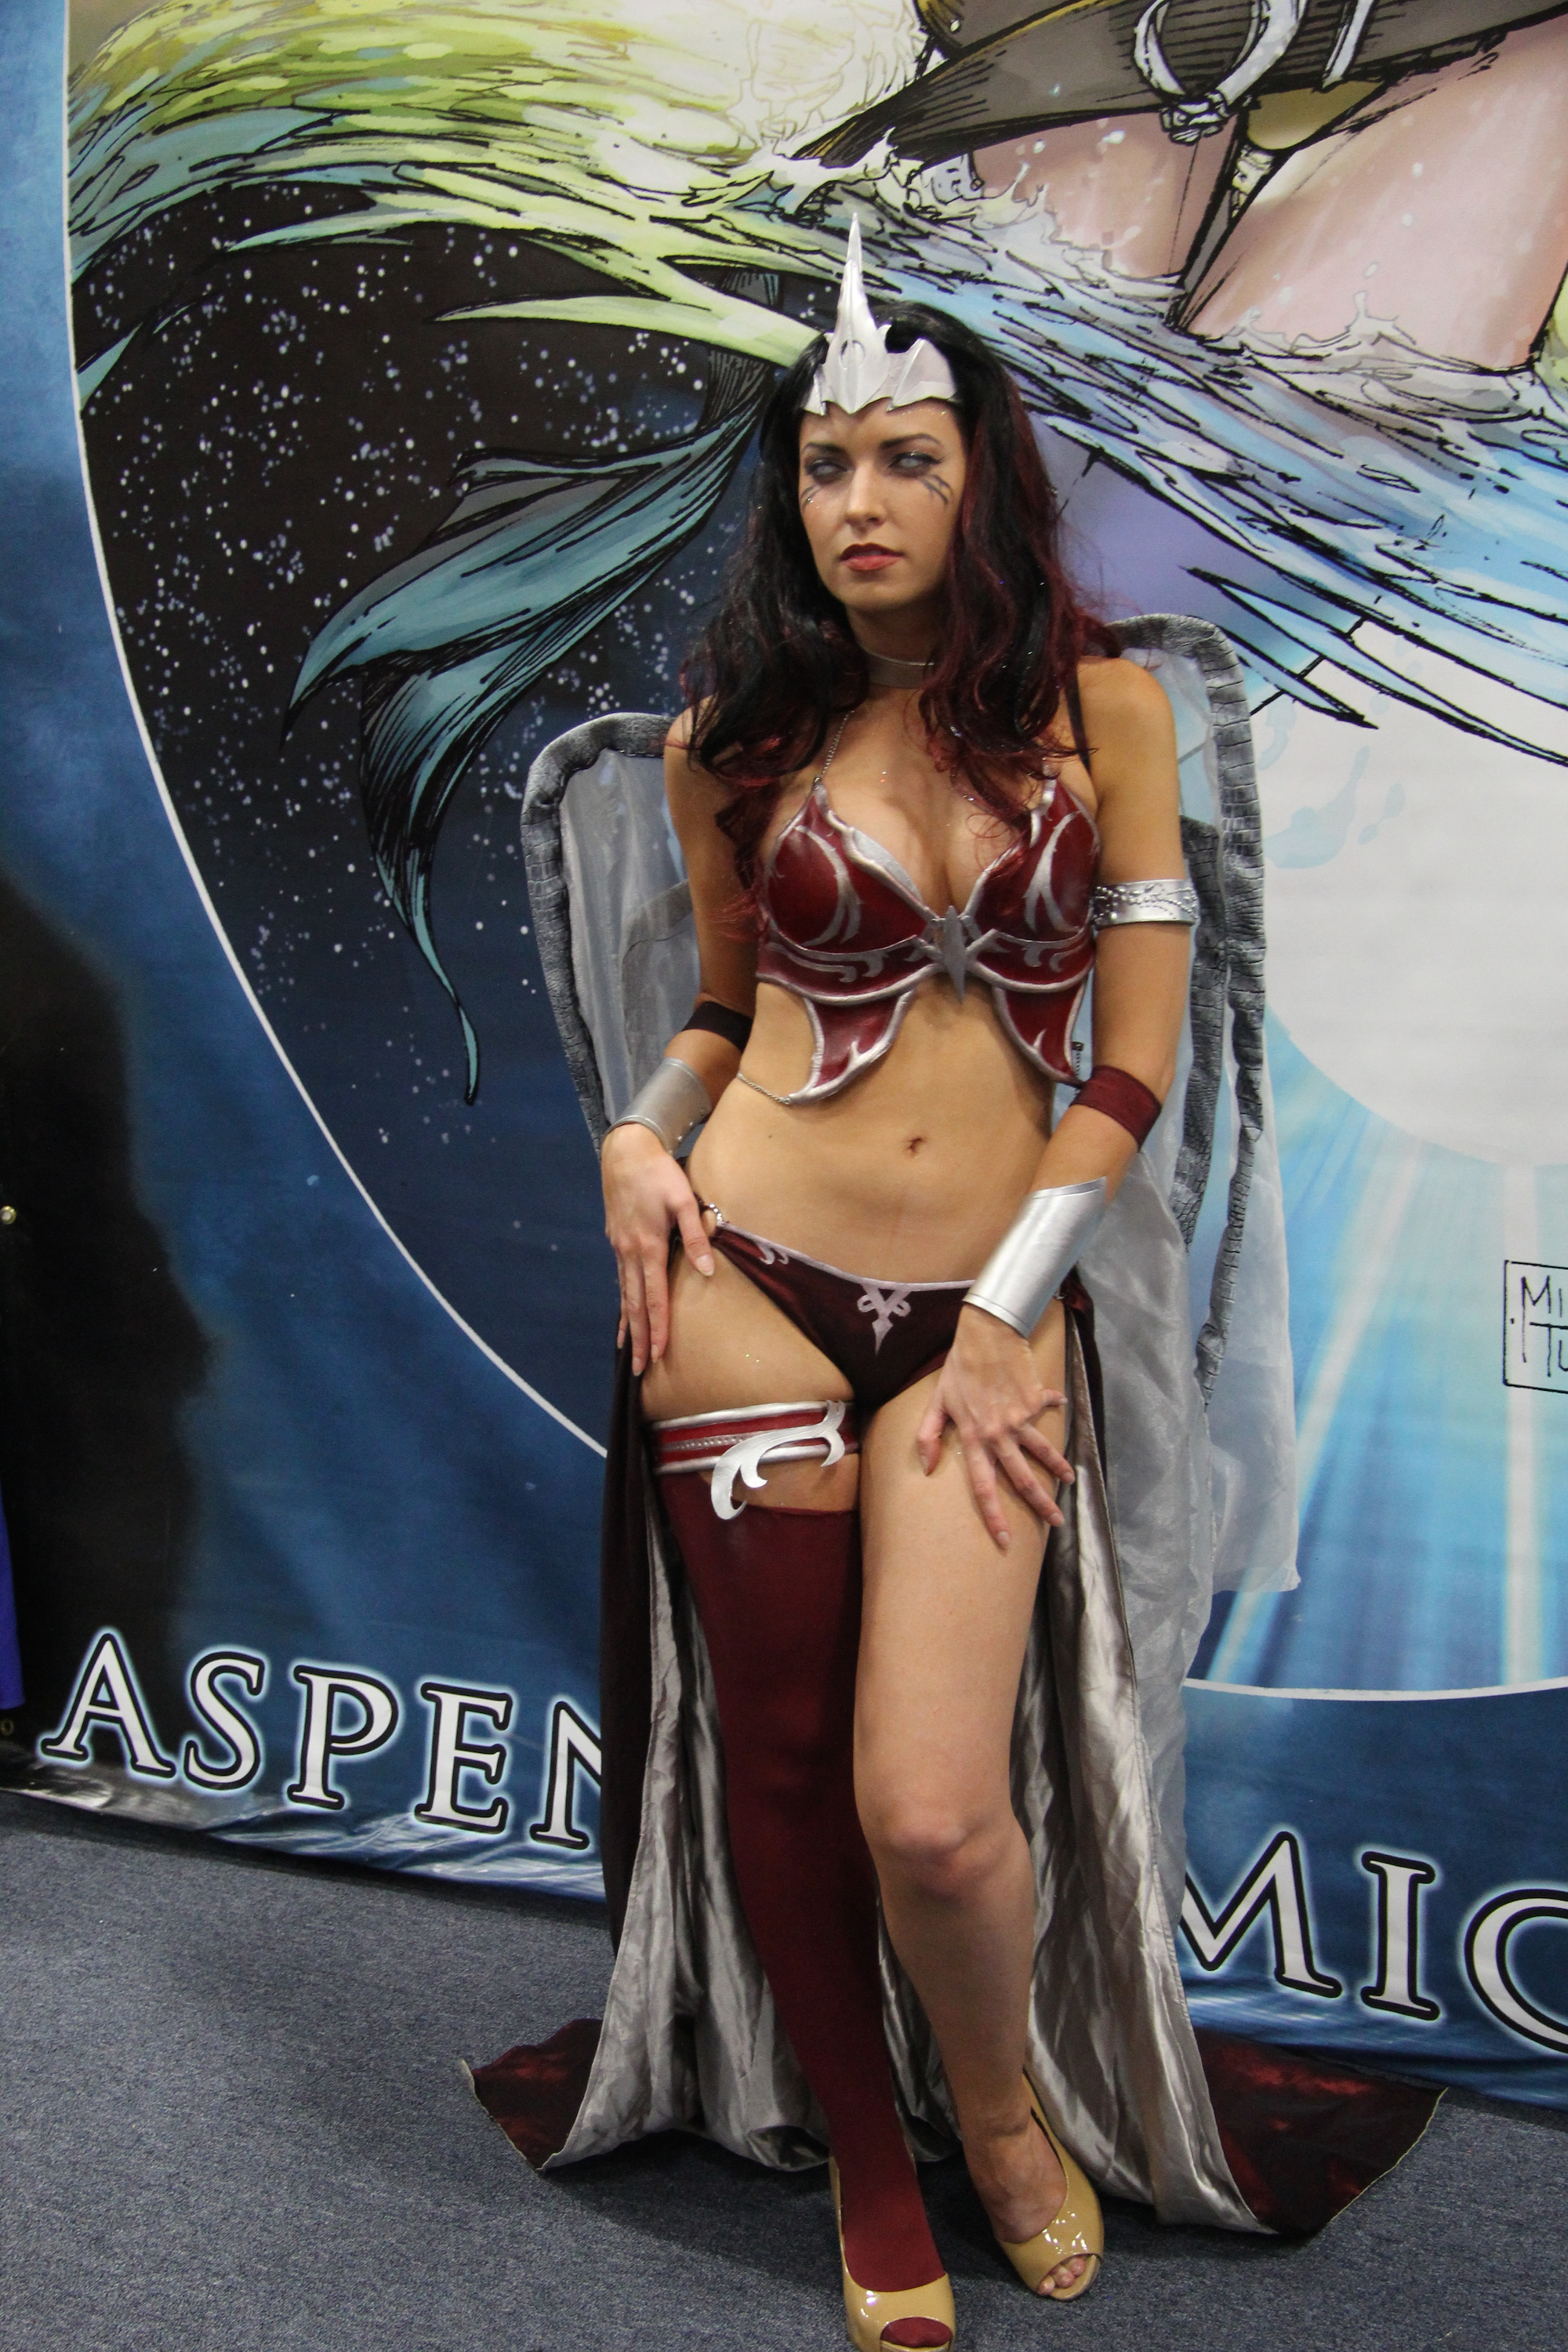 Comic-Con 2014: una seducente cosplayer a San Diego